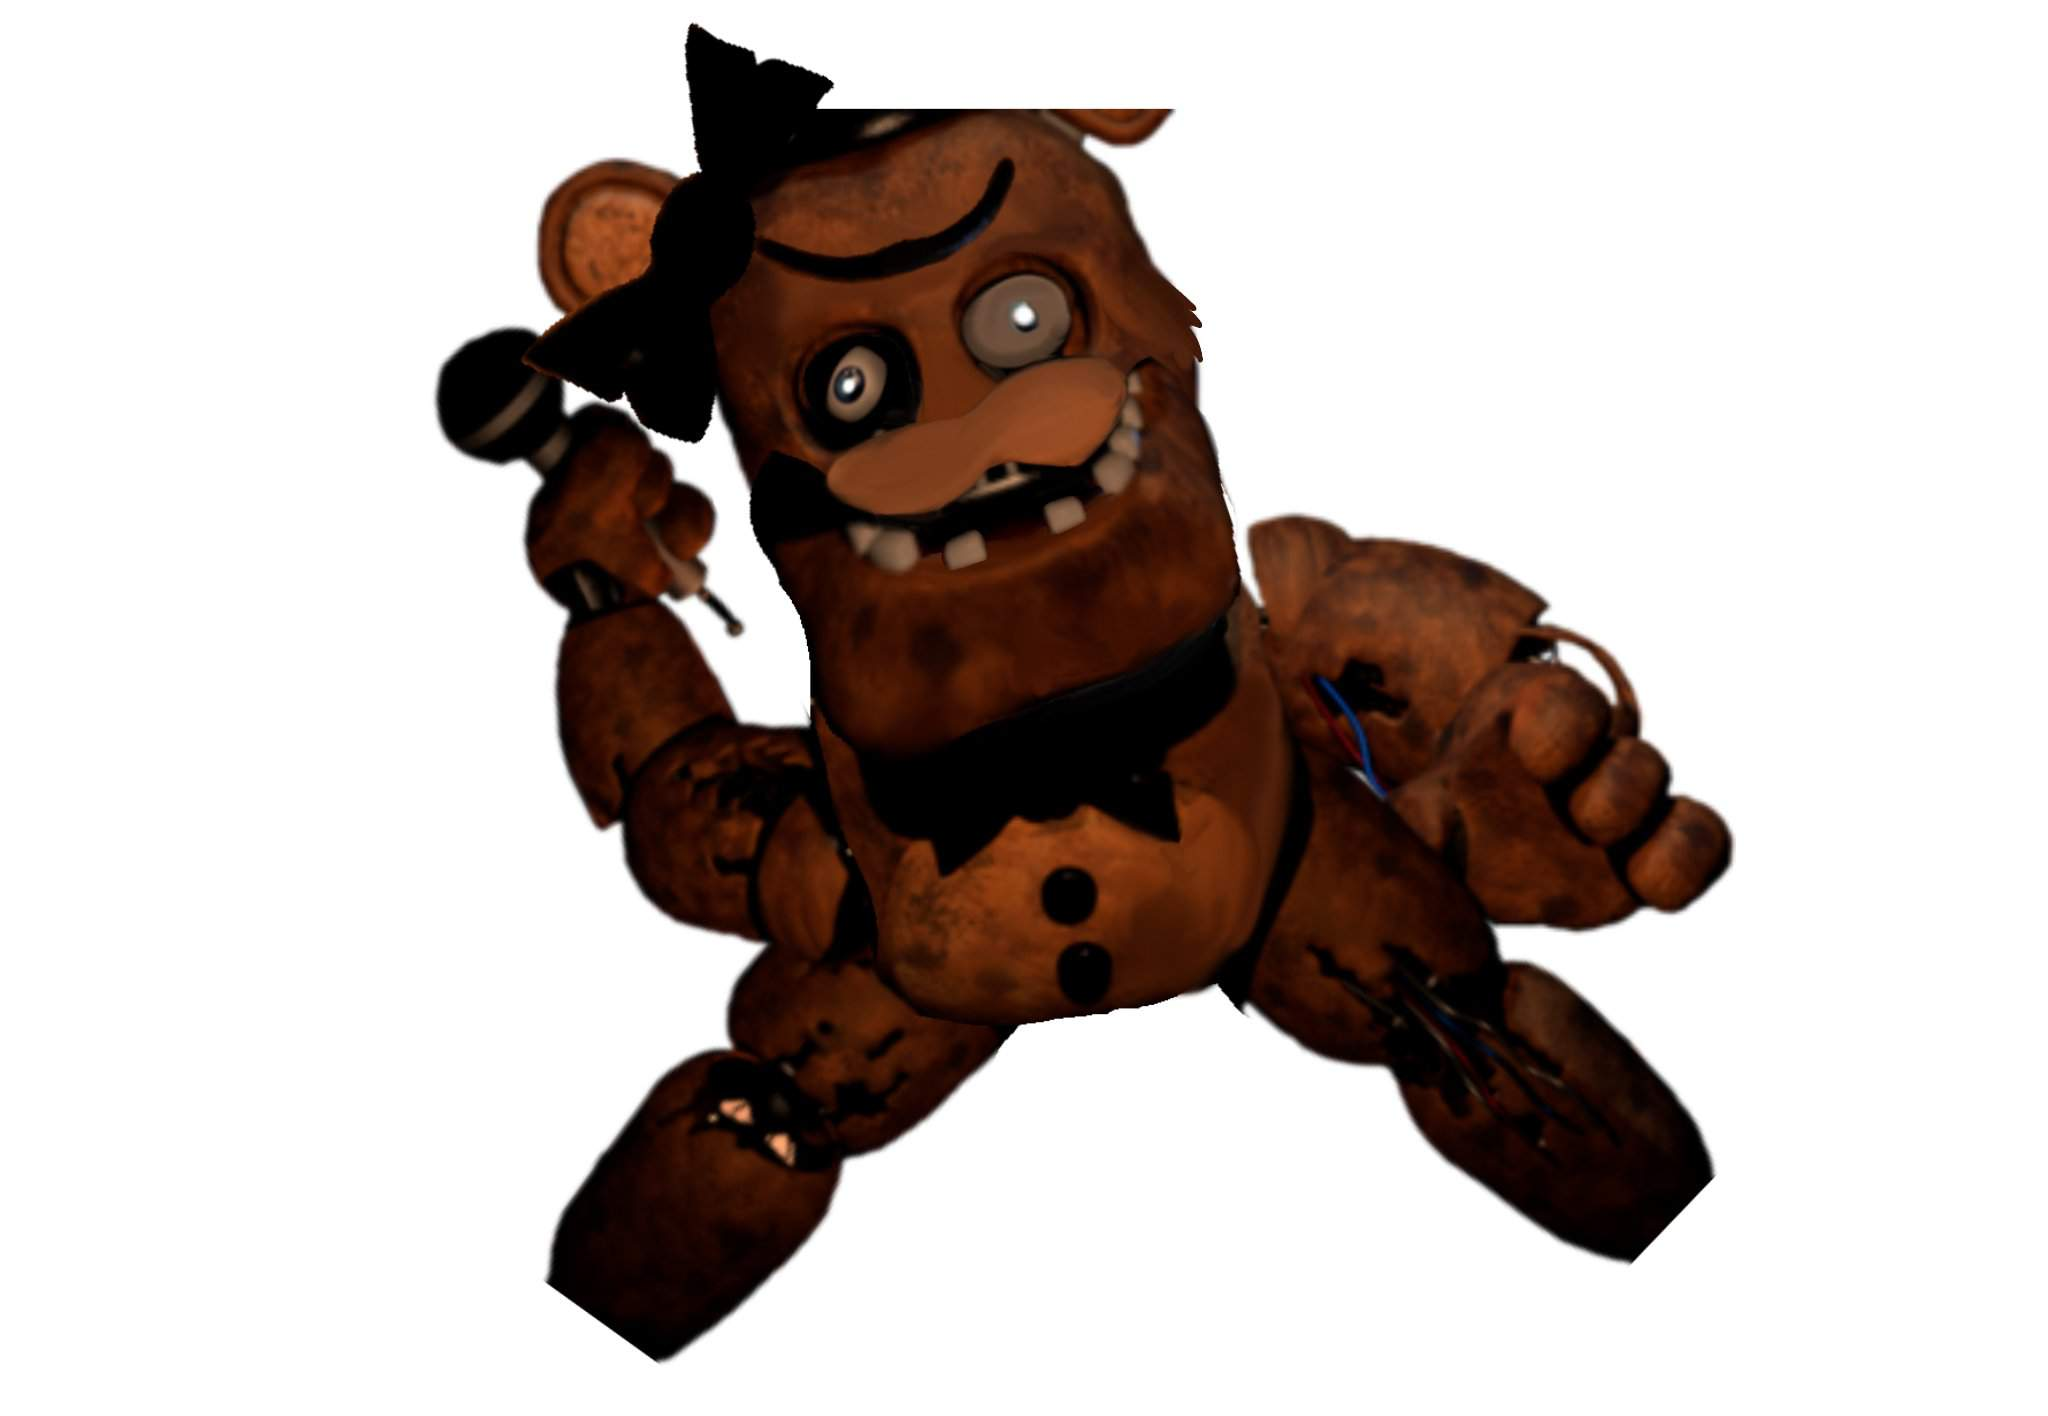 Withered Freddy Has Never Looked Better Five Nights At Freddy S Amino As seeing the old version it was so bad with models so i am gonna remaster all the models and make it better this game is gonna have same gameplay but way so get ready for freddy and friend there back. amino apps